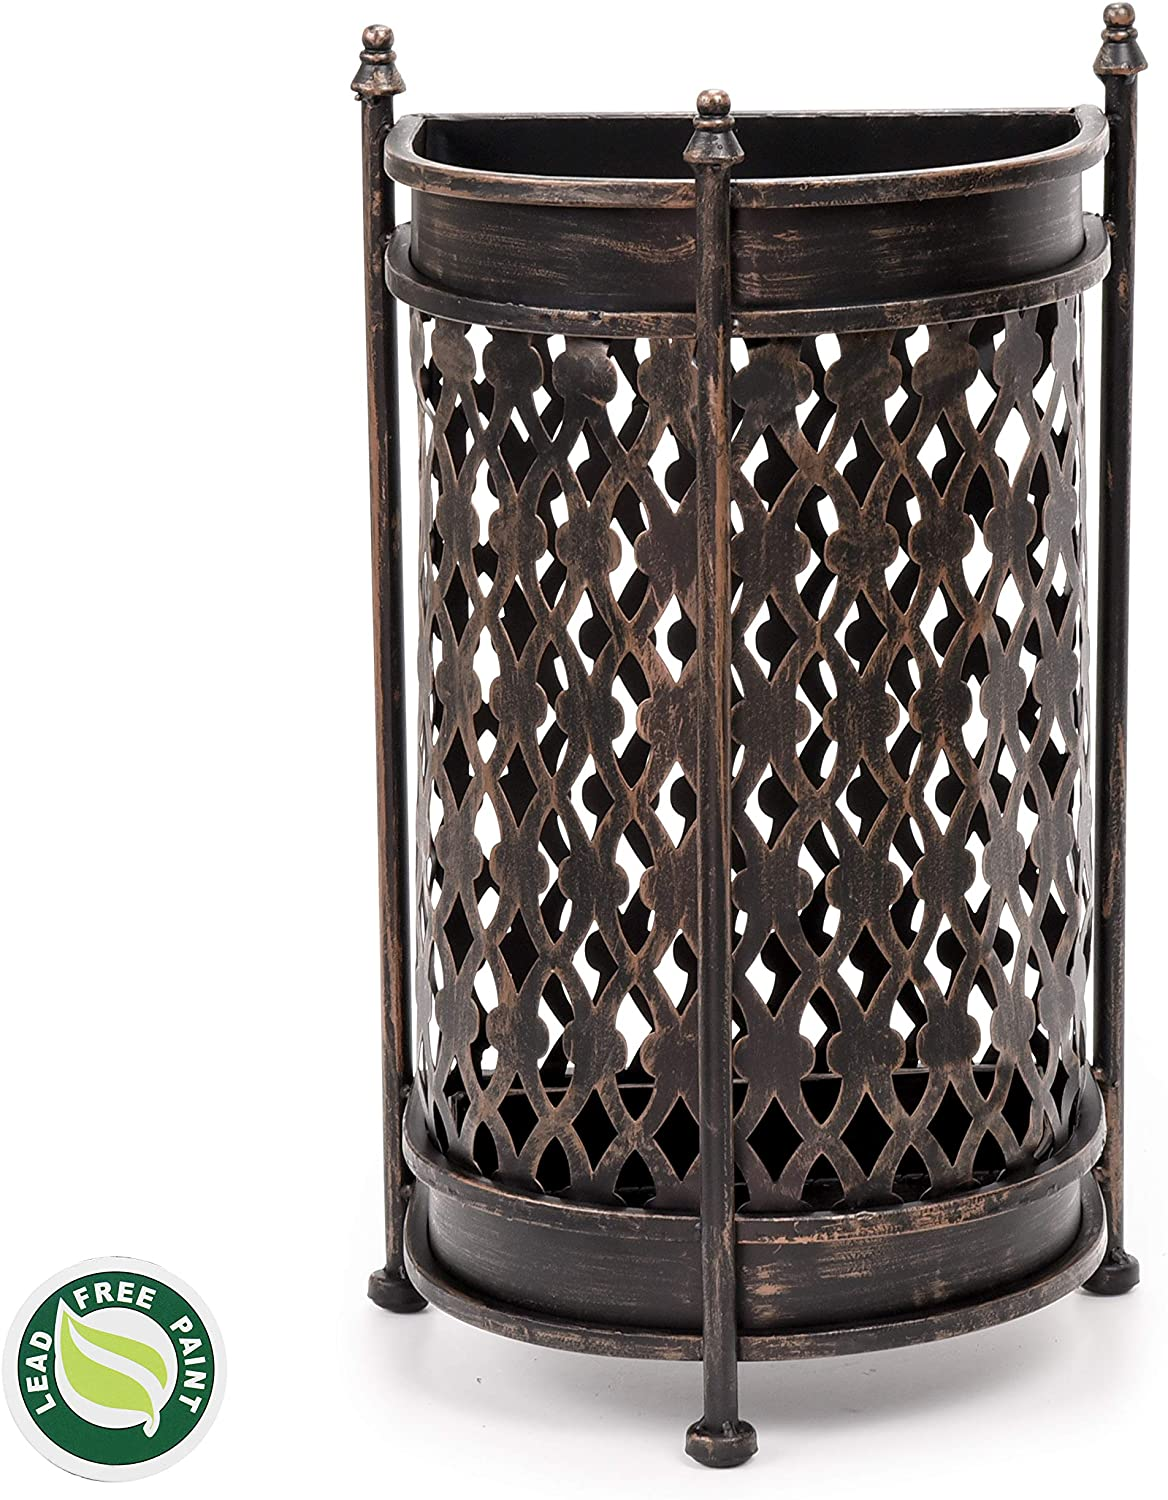 Dualplex Super Quality Umbrella Stand, Umbrella Holder, Antique Look Metal, Entry Hallway Décor, Wallside Style, w/Removable Drip Tray. Home, Office Decoration Rack Holds Umbrellas Canes Walking Stick